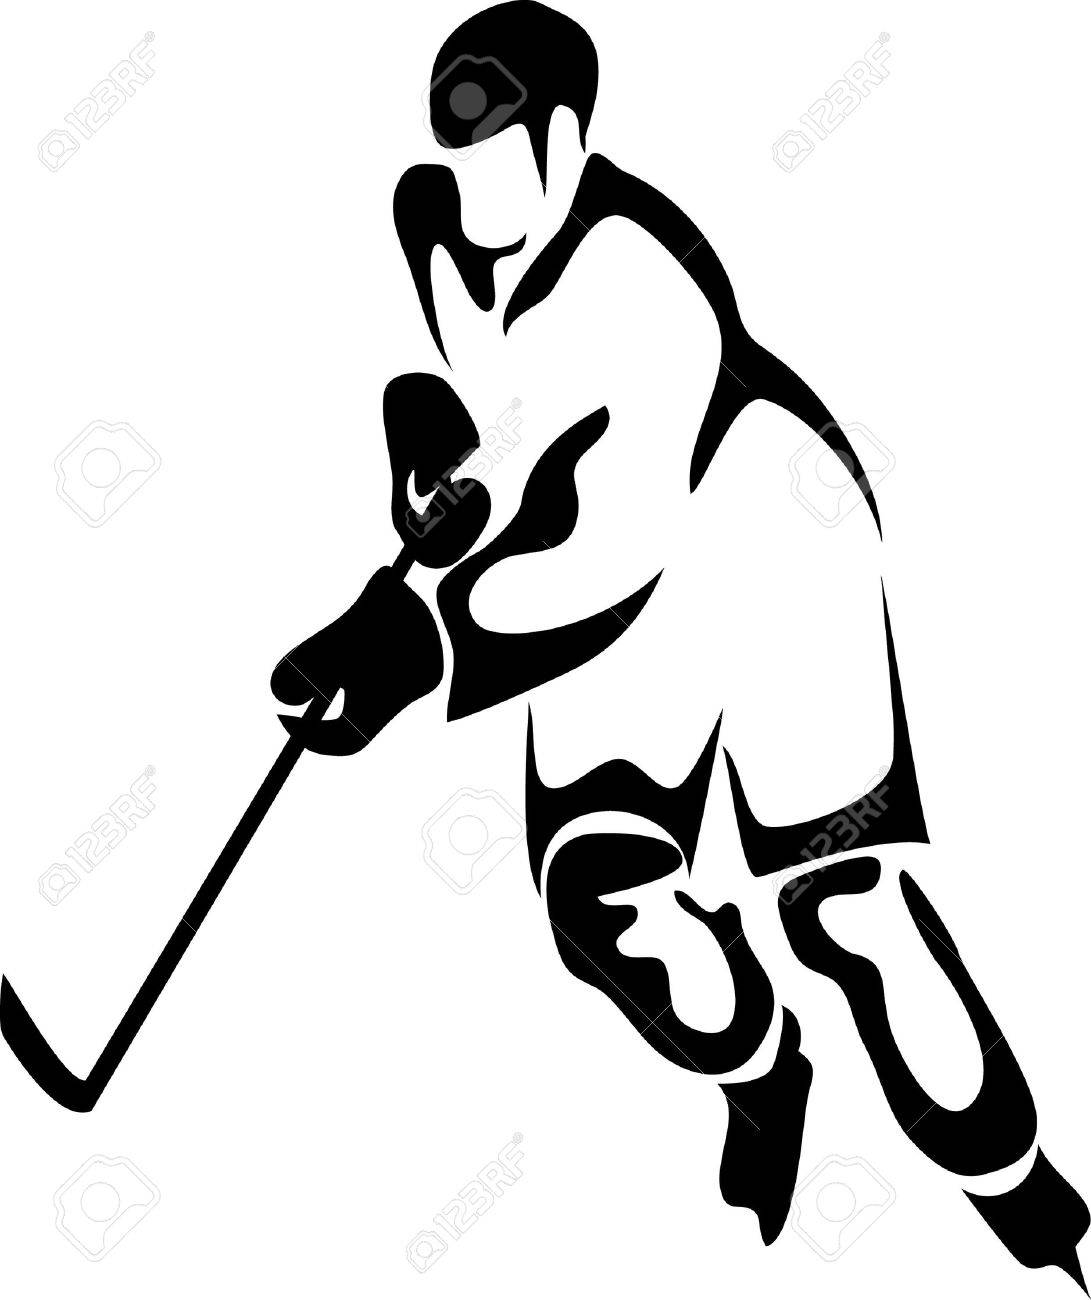 1091x1300 Images Hockey Player Clipart